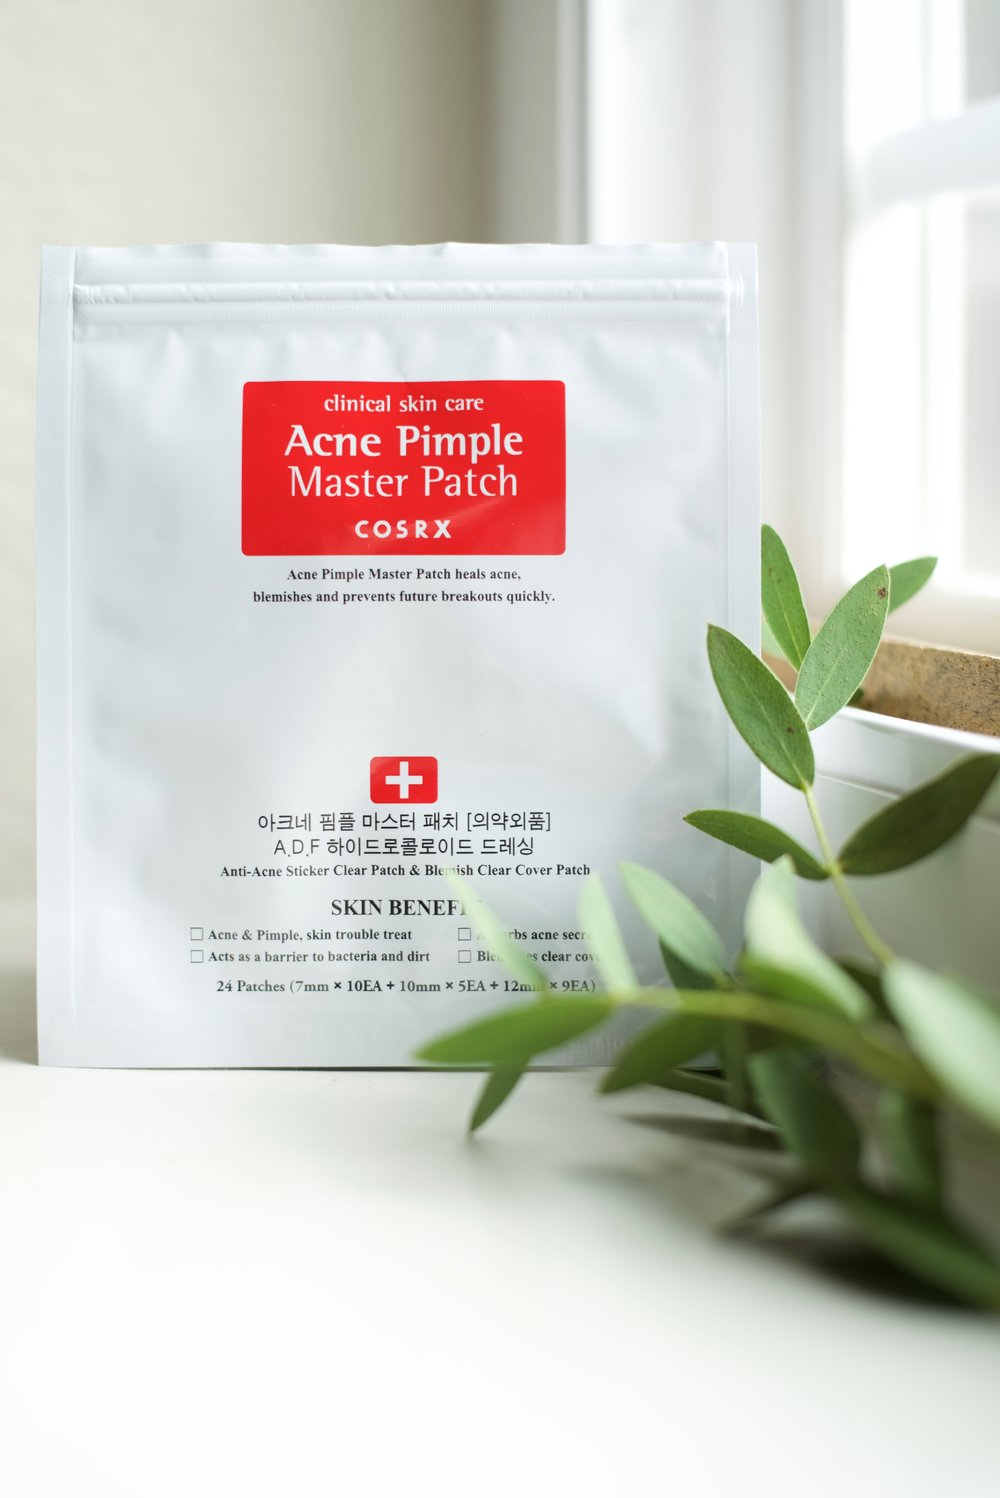 5. COSRX Acne Pimple Master Patch - To fight off pimples.